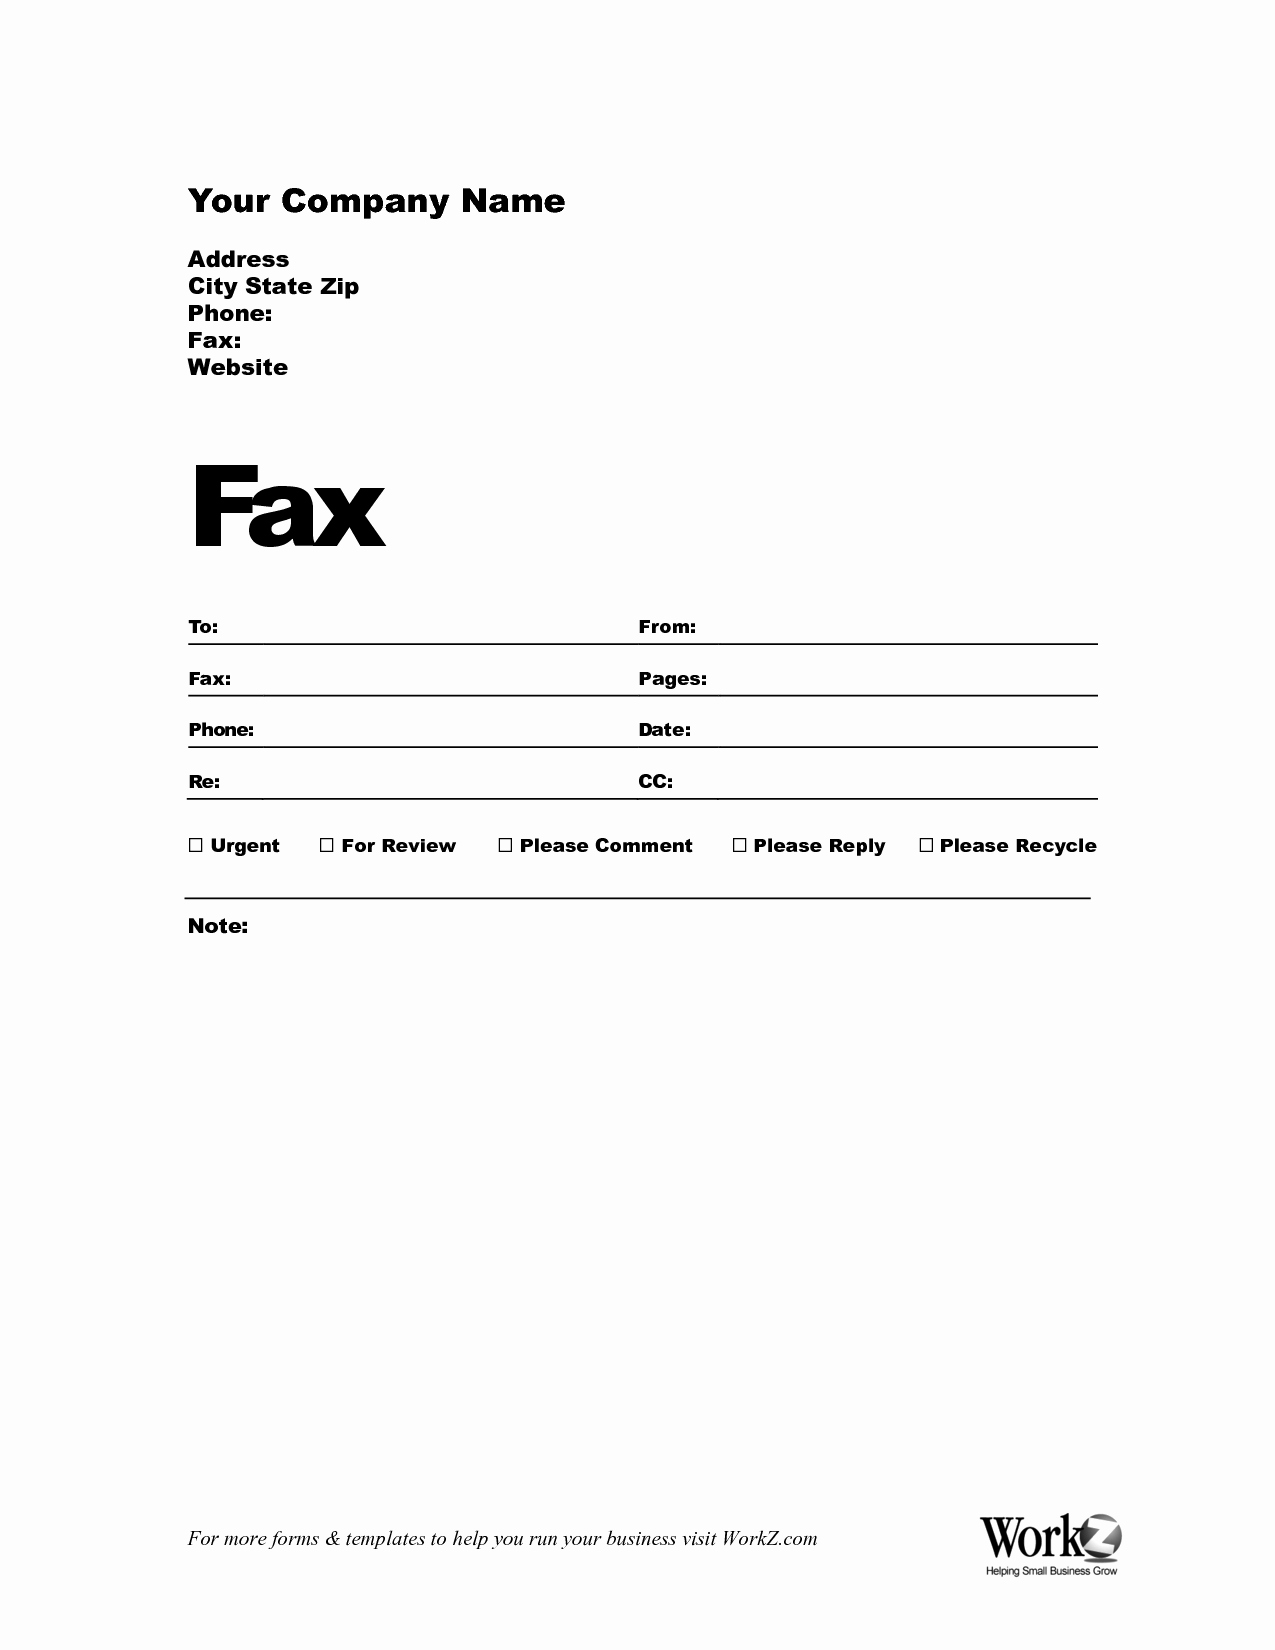 Free Fax Cover Letter Template Lovely Free Fax Cover Sheet Template Bamboodownunder